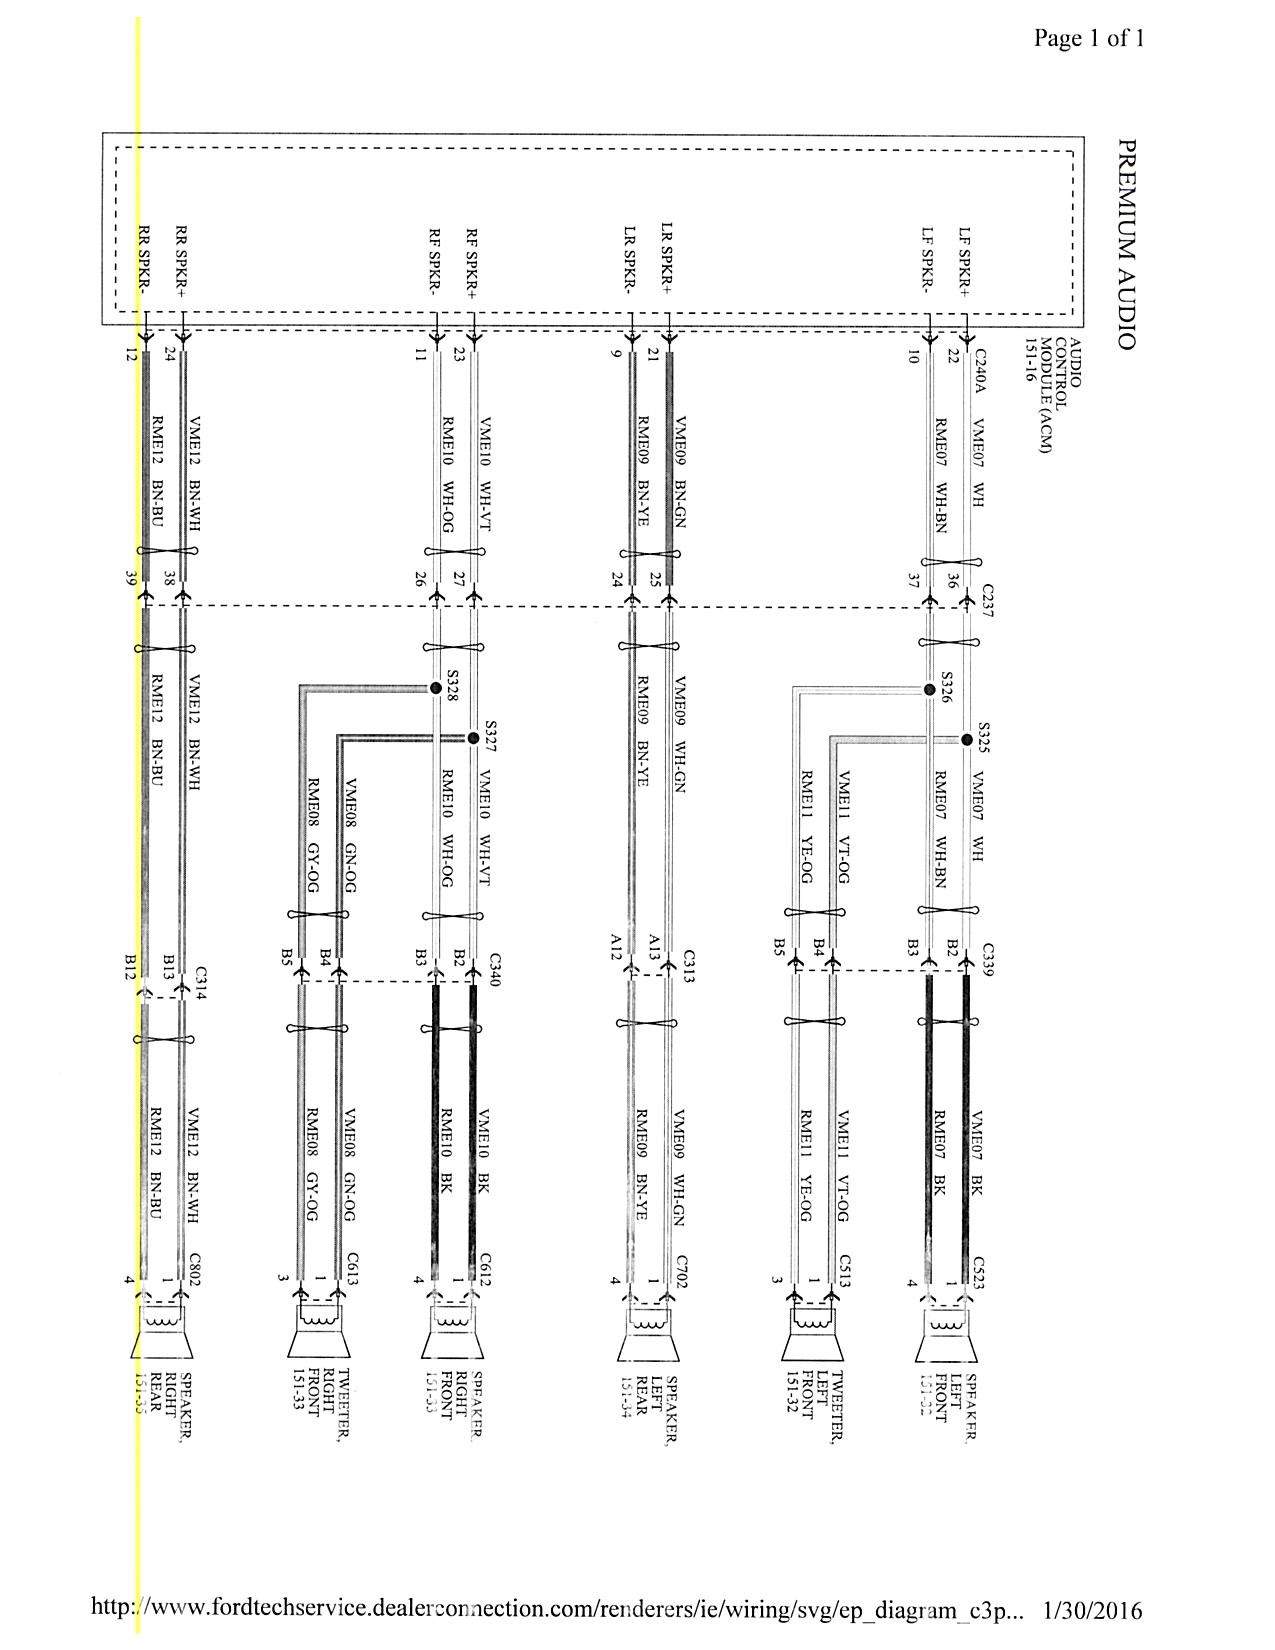 hight resolution of 2003 ford focus radio wiring diagram download 2003 ford focus radio wiring diagra 11